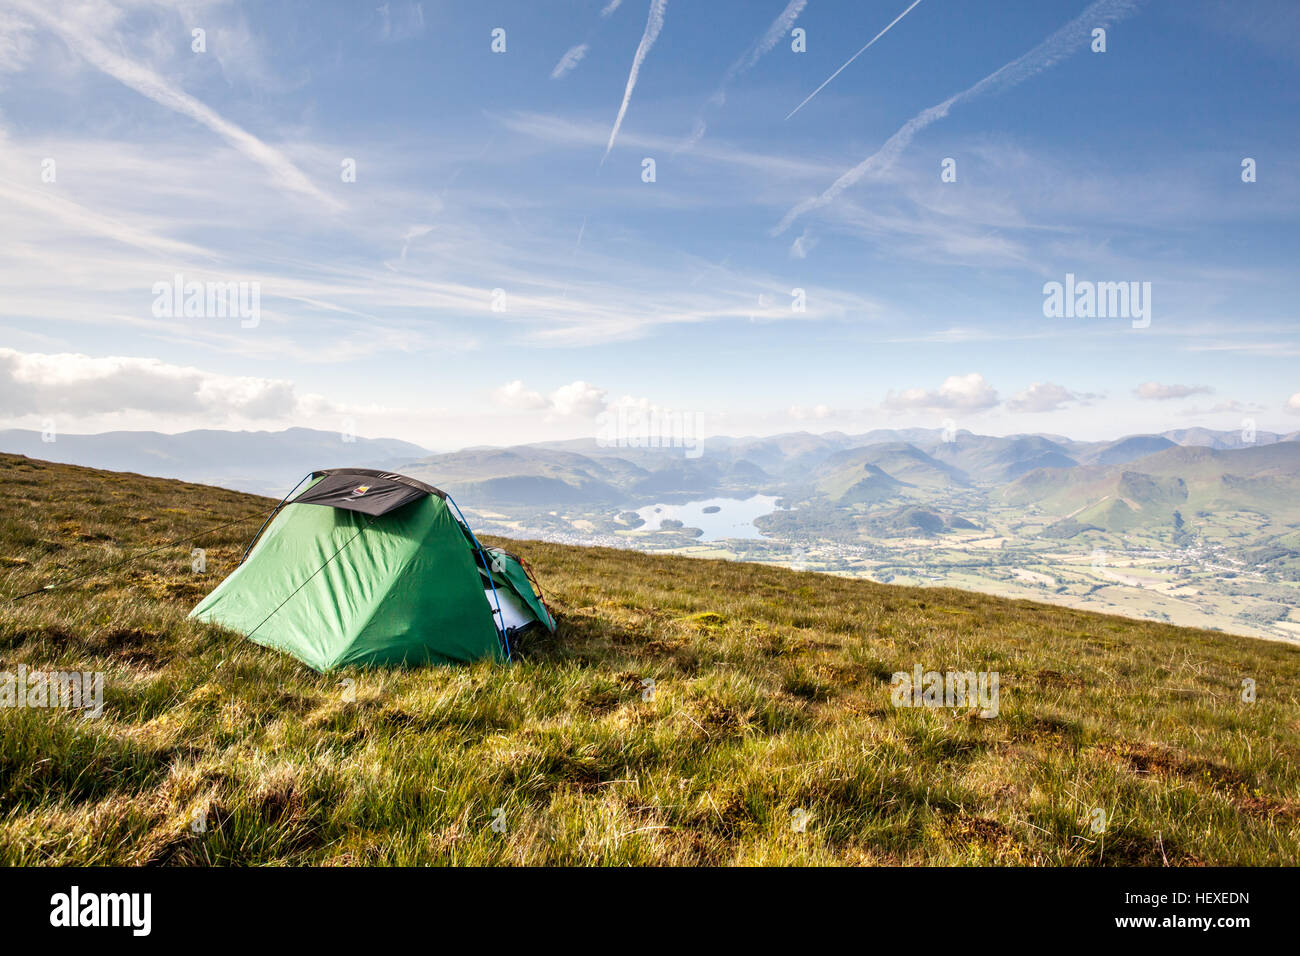 Room with a view - Wild camping on midsummer's day overlooking Keswick and Derwent Water in the English Lake - Stock Image